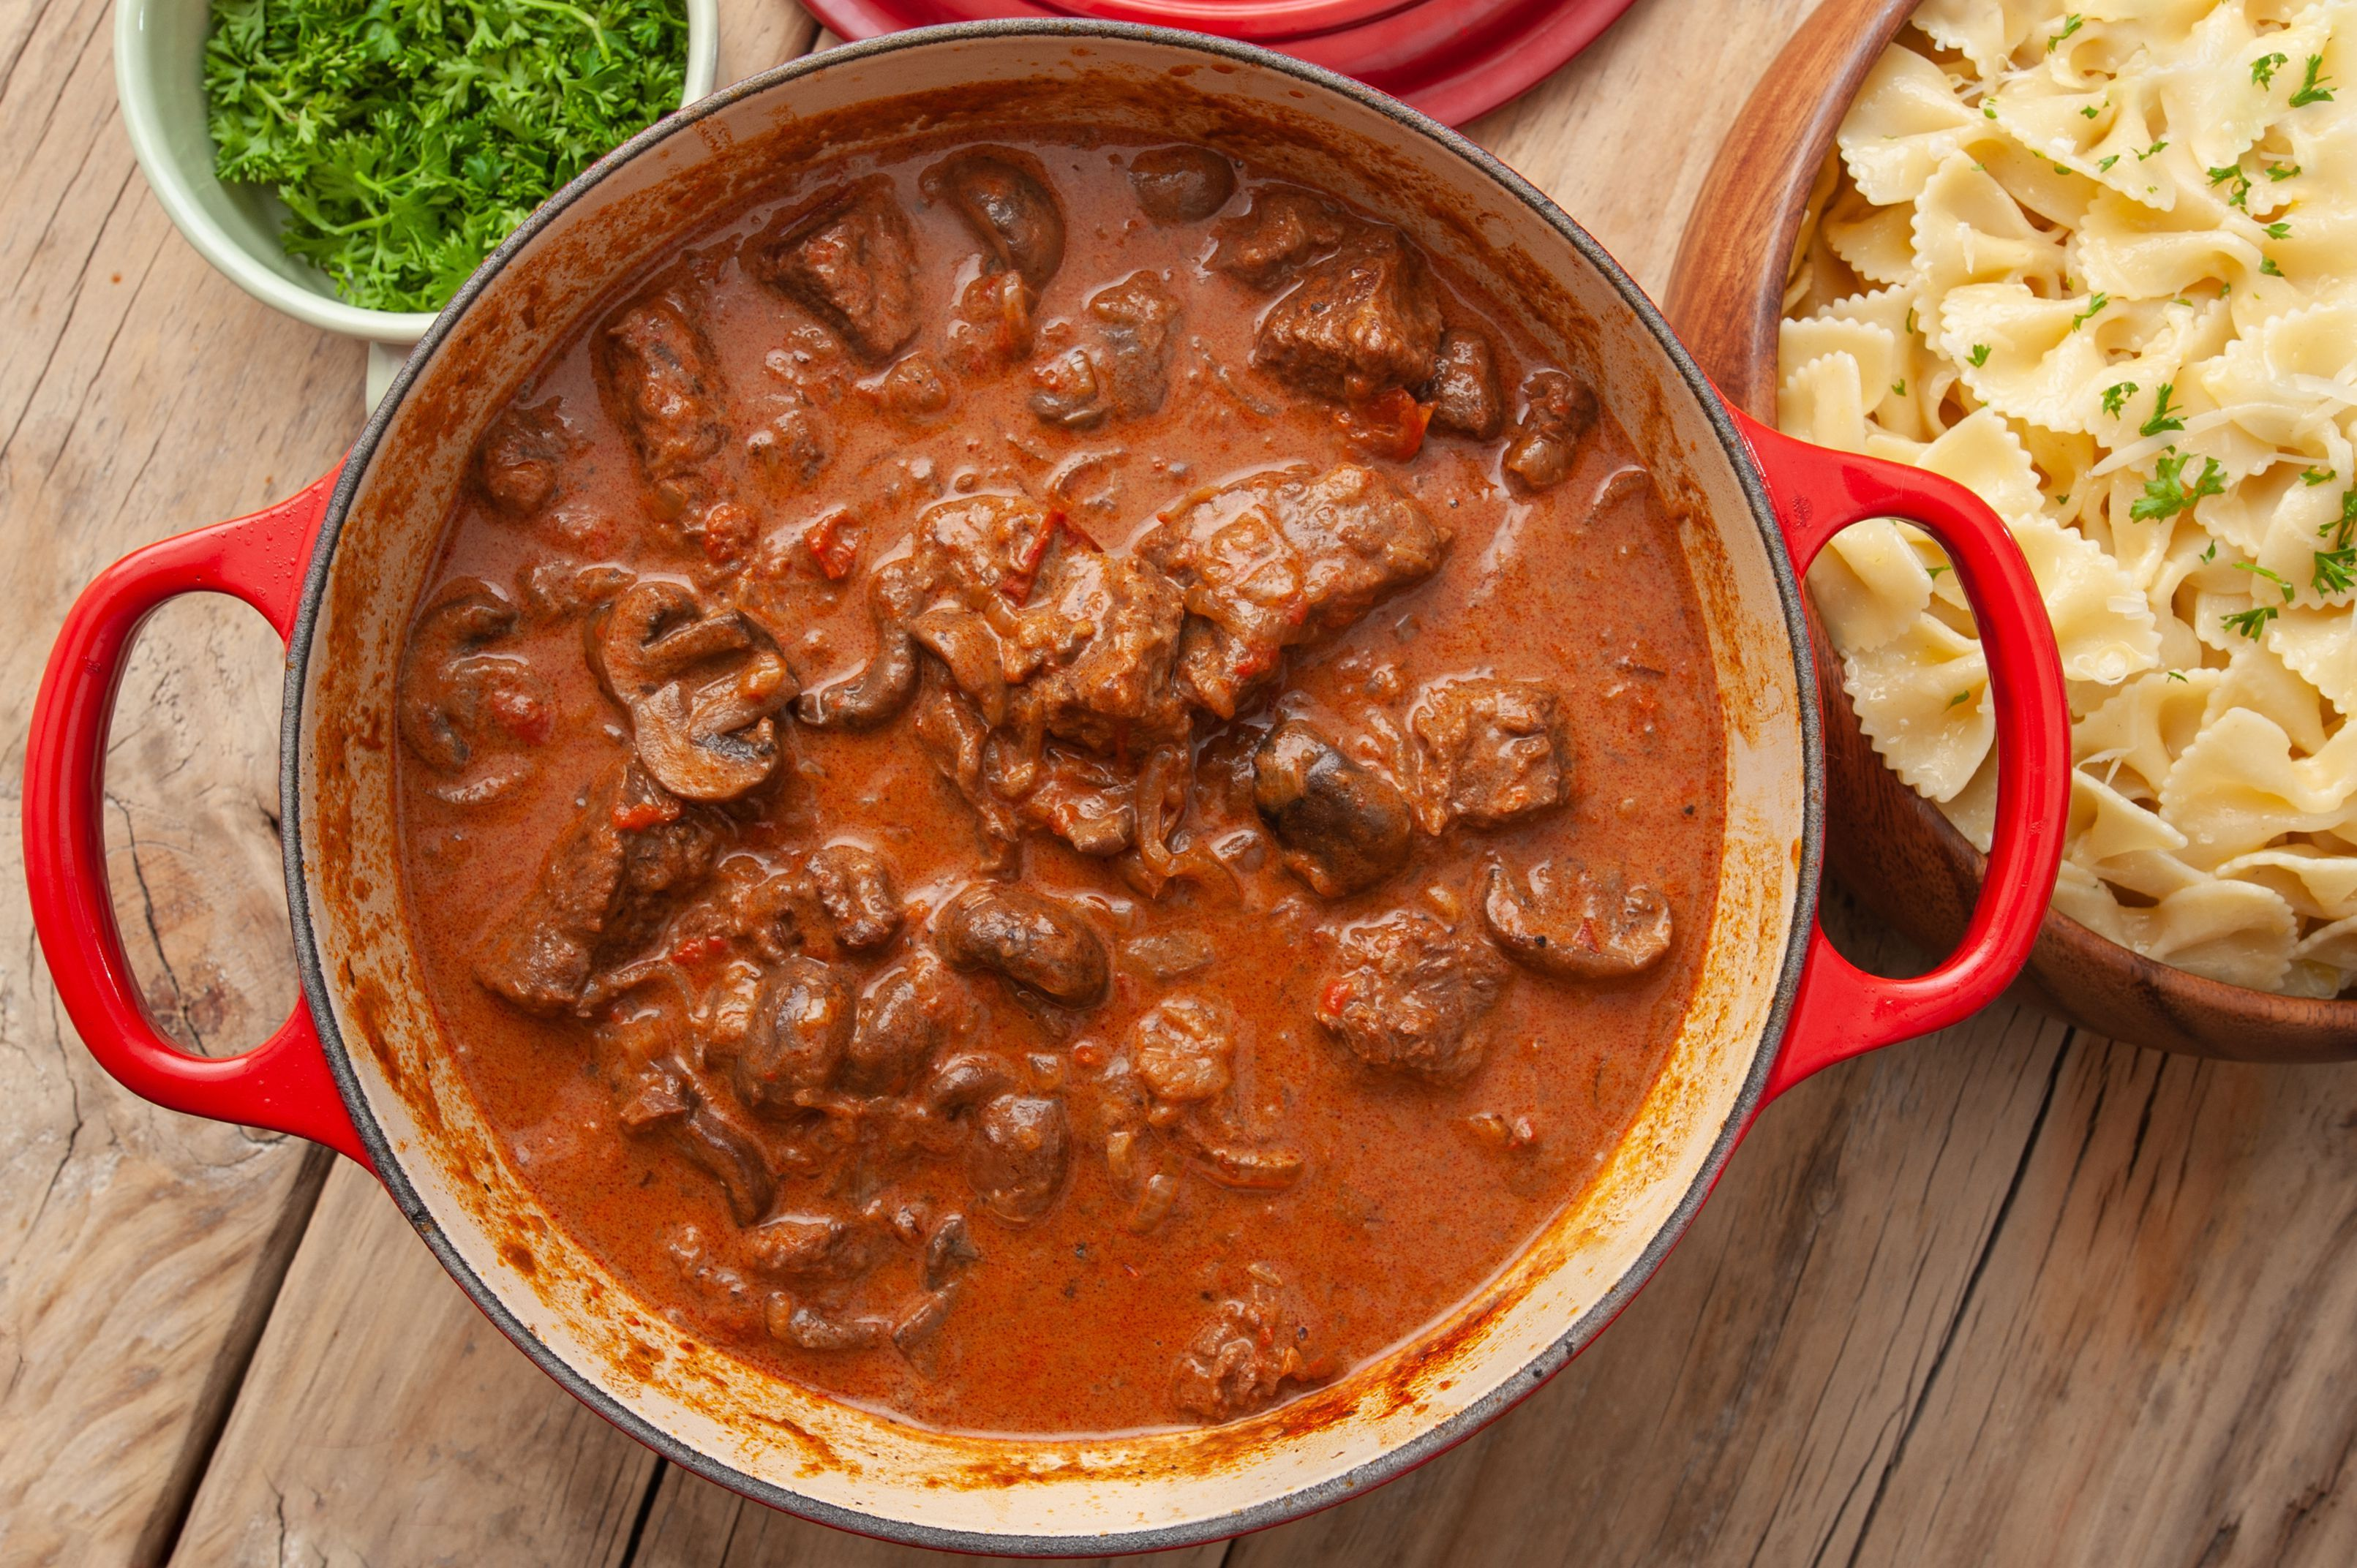 This Easy To Make Traditional Hungarian Beef Dish Is Cooked With Paprika Finished With Sour Cream And Served Over B Goulash Recipes Goulash Hungarian Recipes